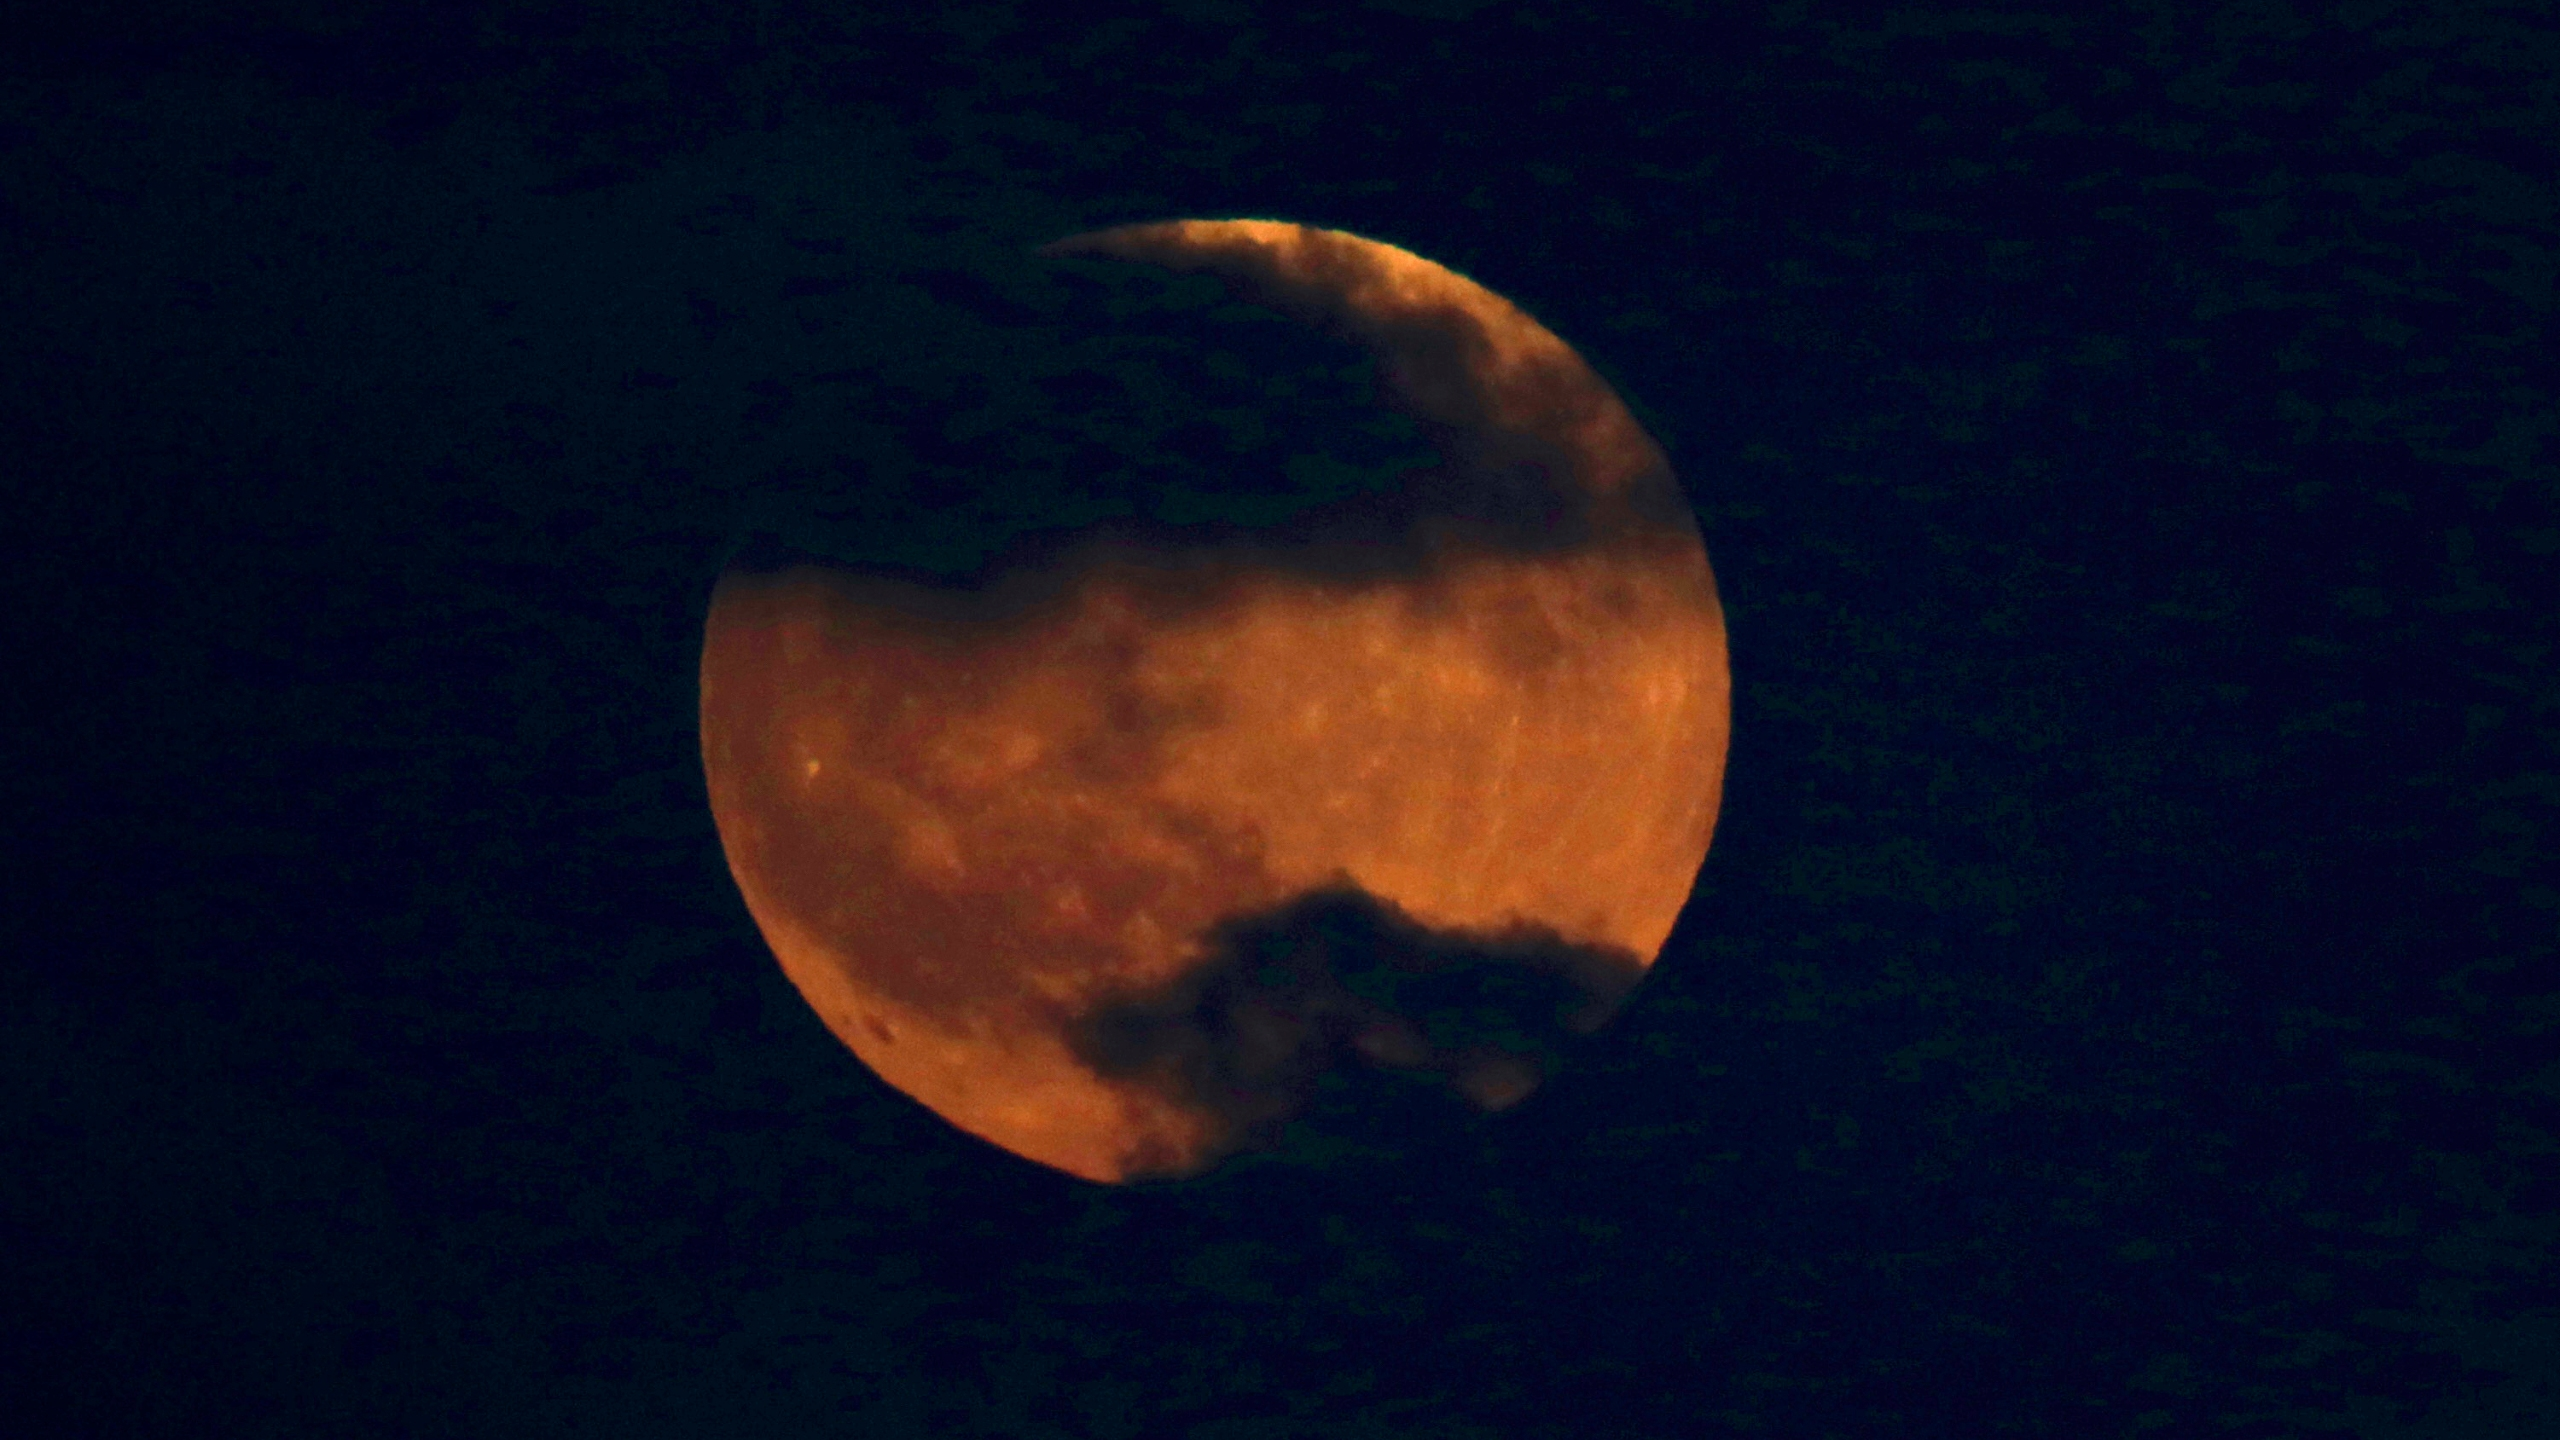 Israel_Blood_Moon_58387-159532.jpg07169737